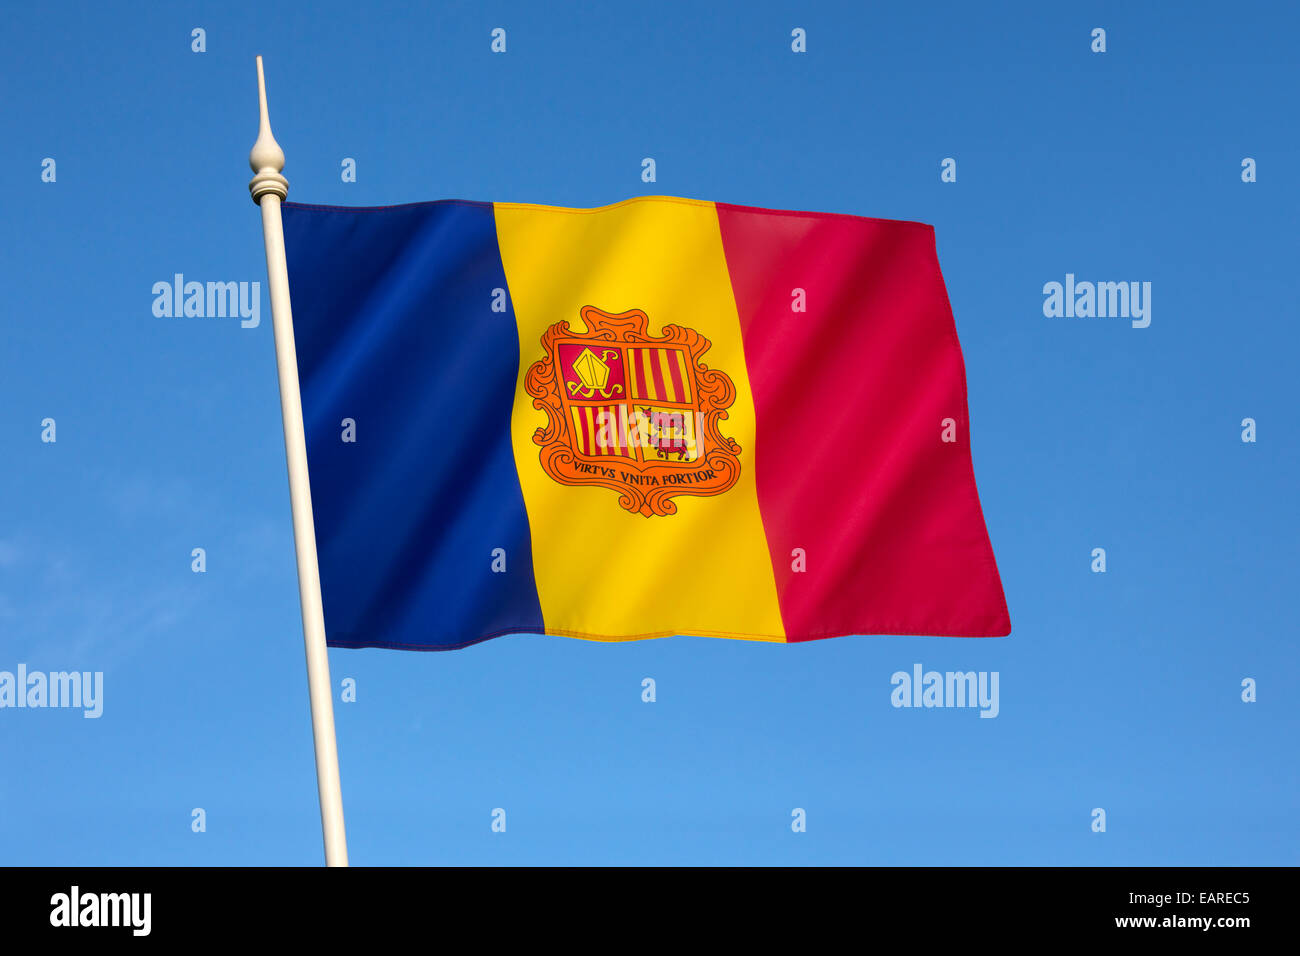 The national flag of the Principality of Andorra - Stock Image